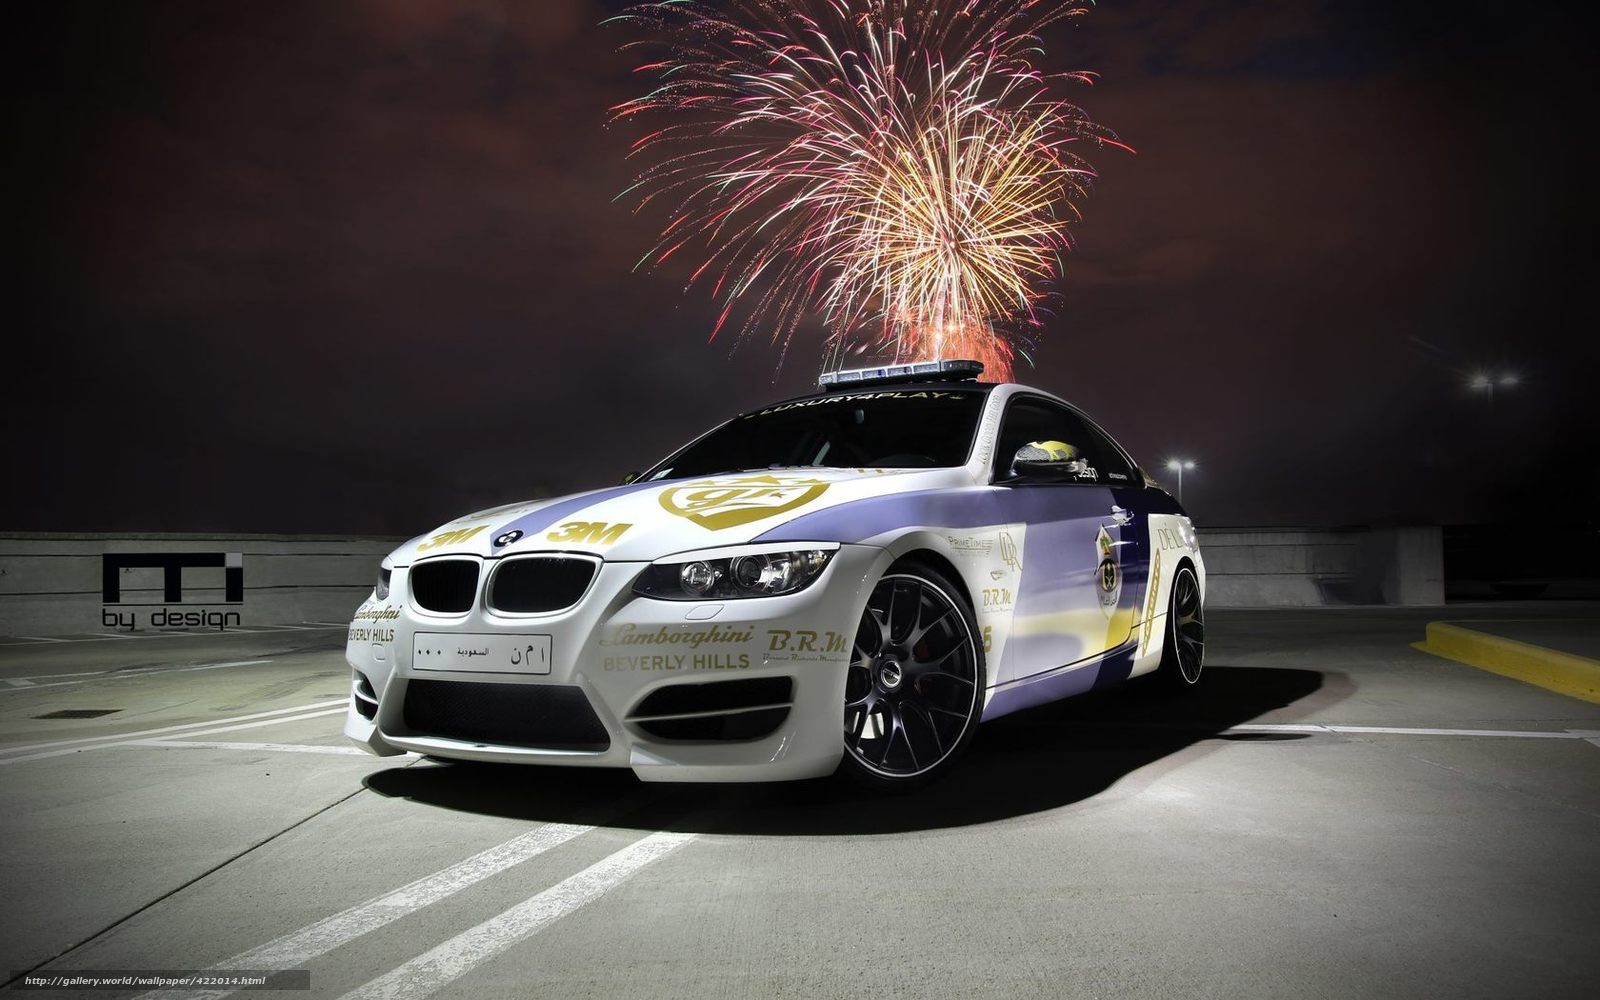 Download wallpaper bmw free desktop wallpaper in the resolution 1680x1050 — picture №422014